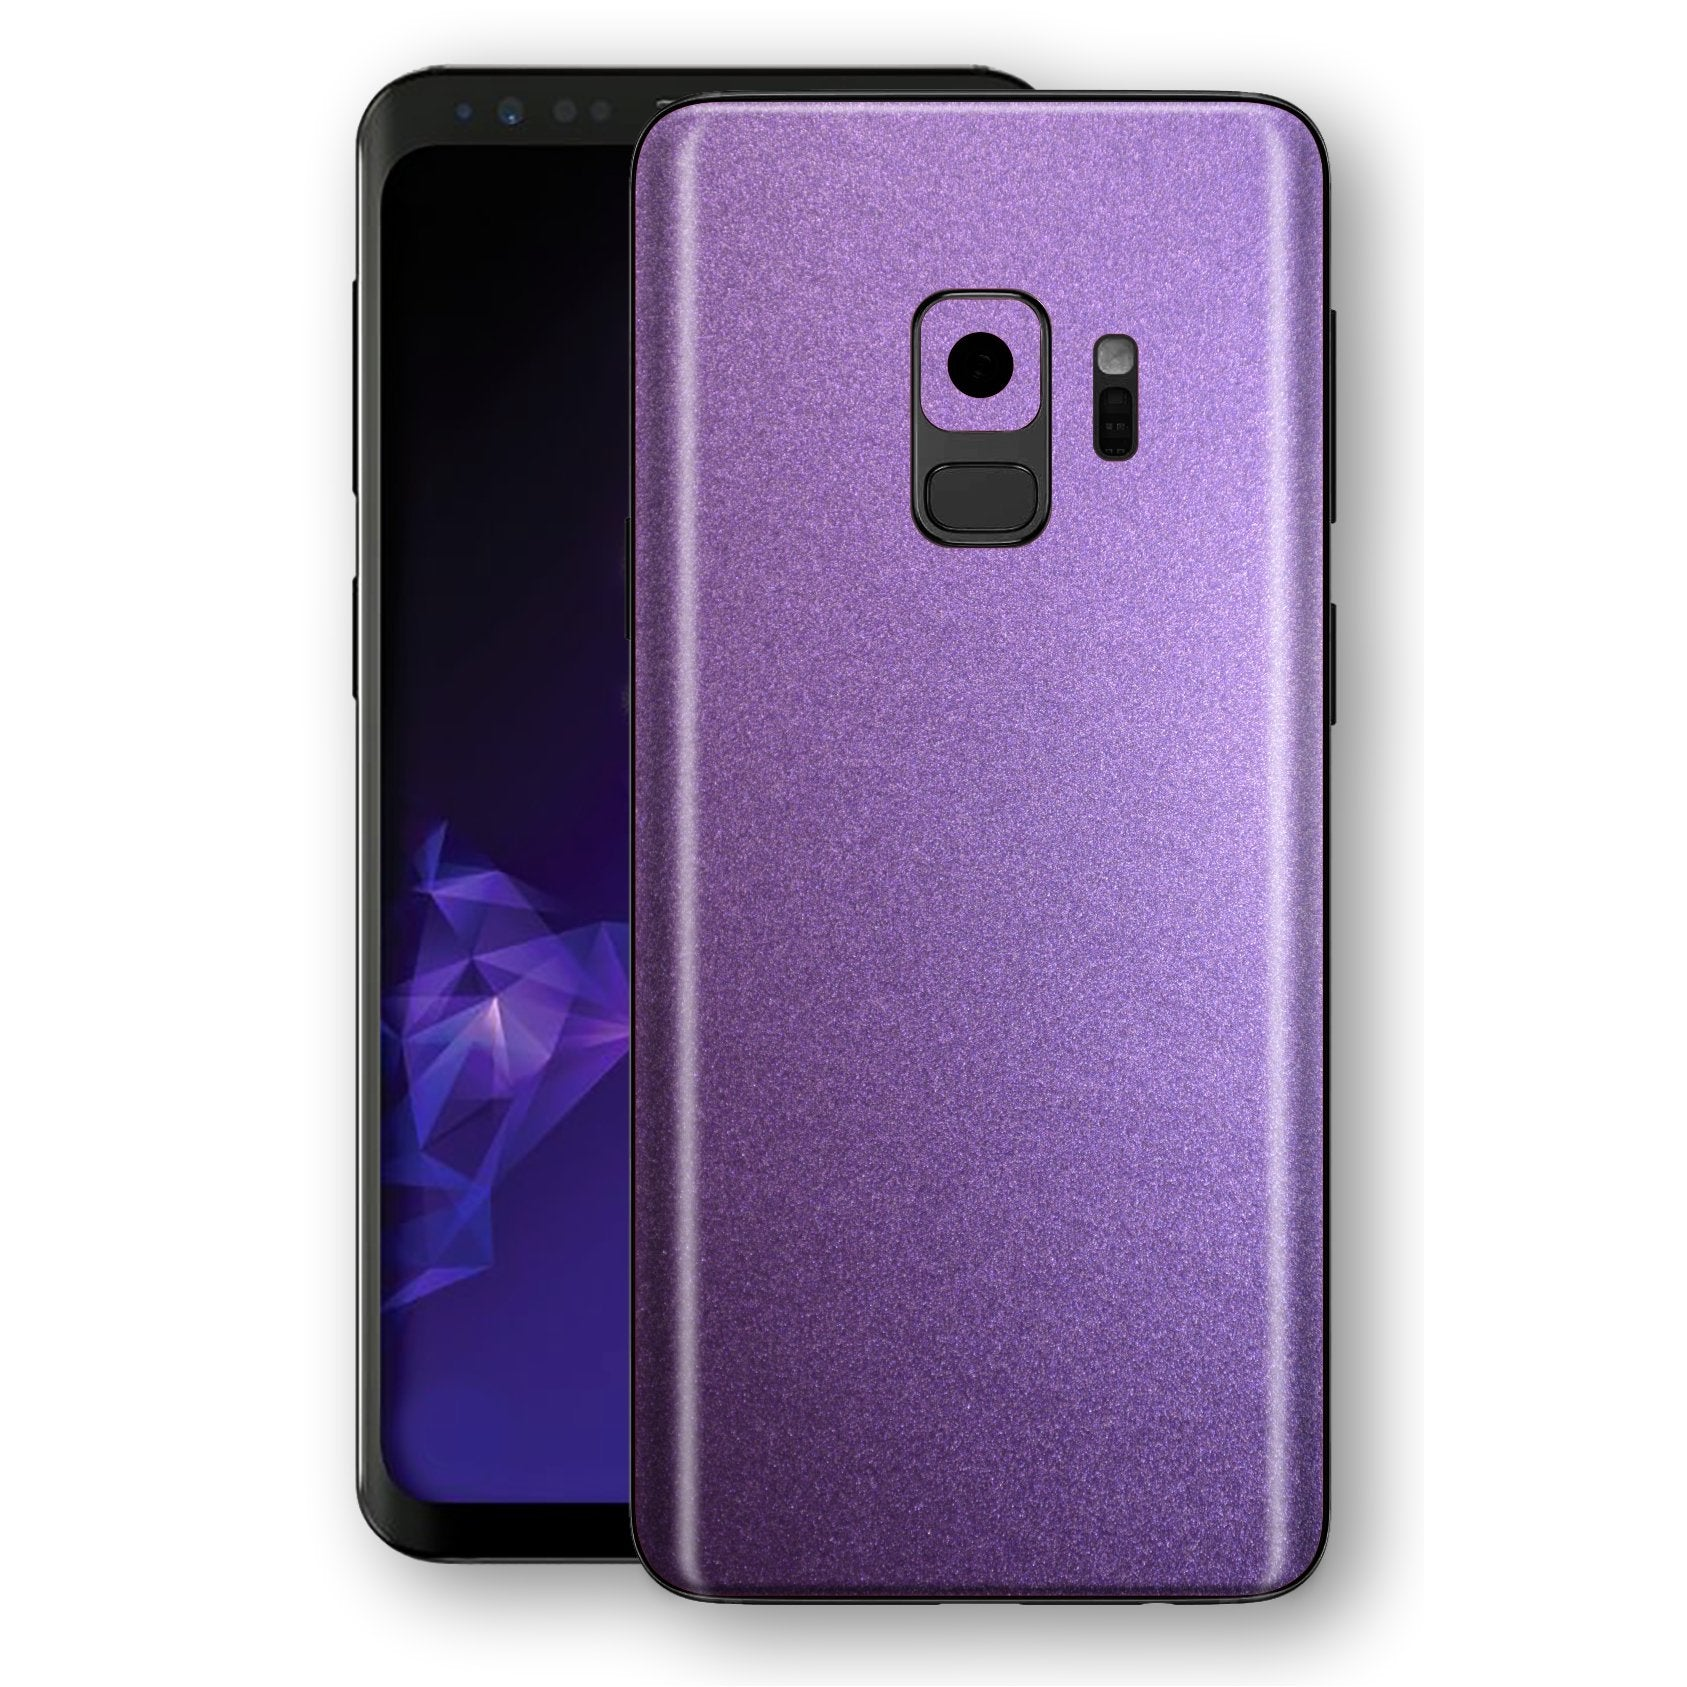 Samsung GALAXY S9 Violet Matt Metallic Skin, Decal, Wrap, Protector, Cover by EasySkinz | EasySkinz.com